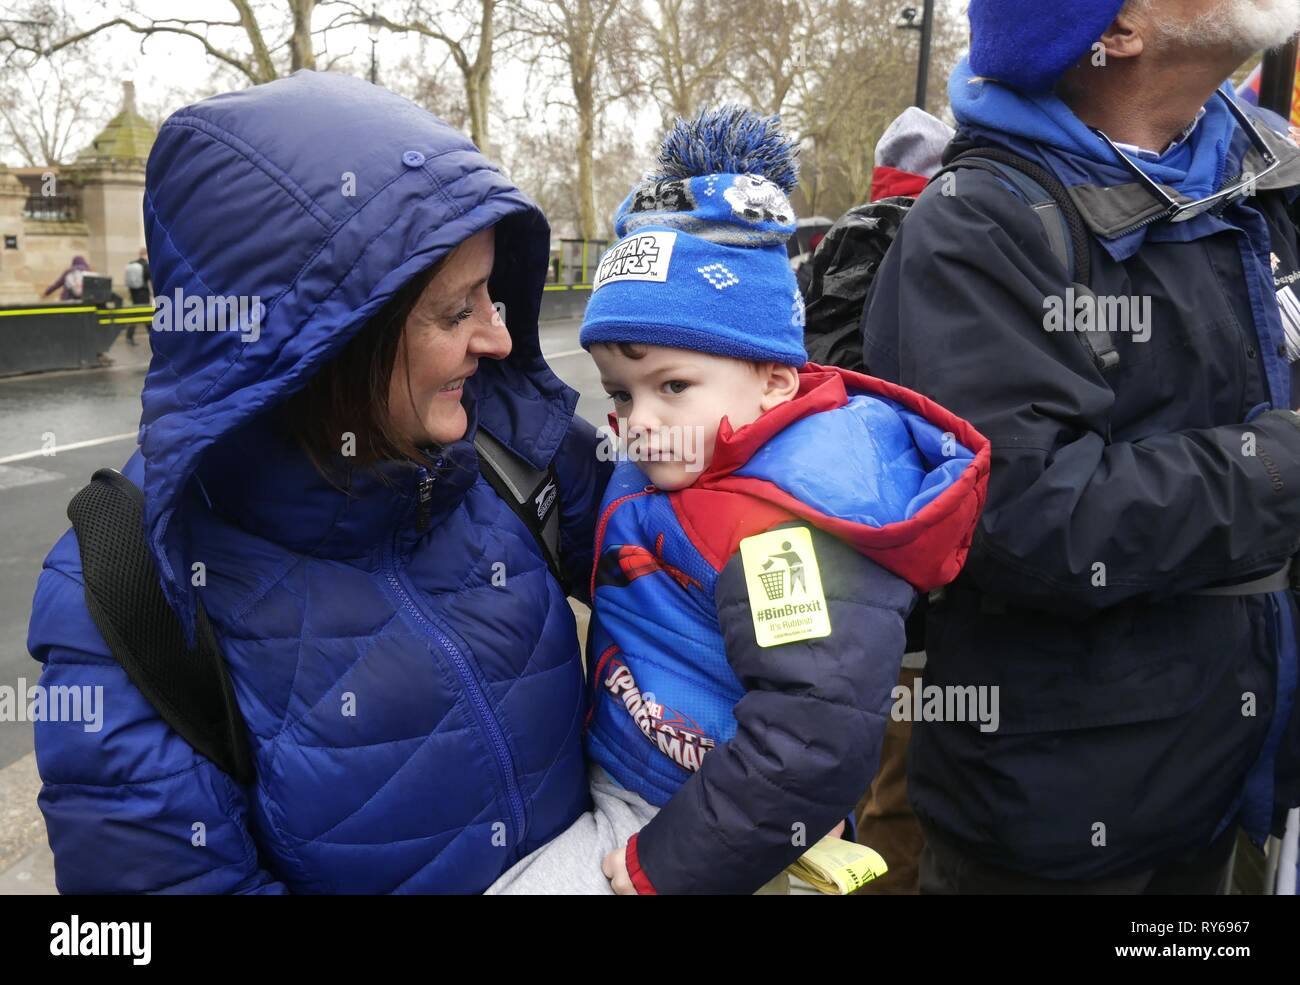 London, UK. 12th Mar, 2019. Pro and Anti Brexit protesters continue to gather outside Parliament on Meaningful Vote Day. Credit: Brian Minkoff /Alamy Live News Stock Photo